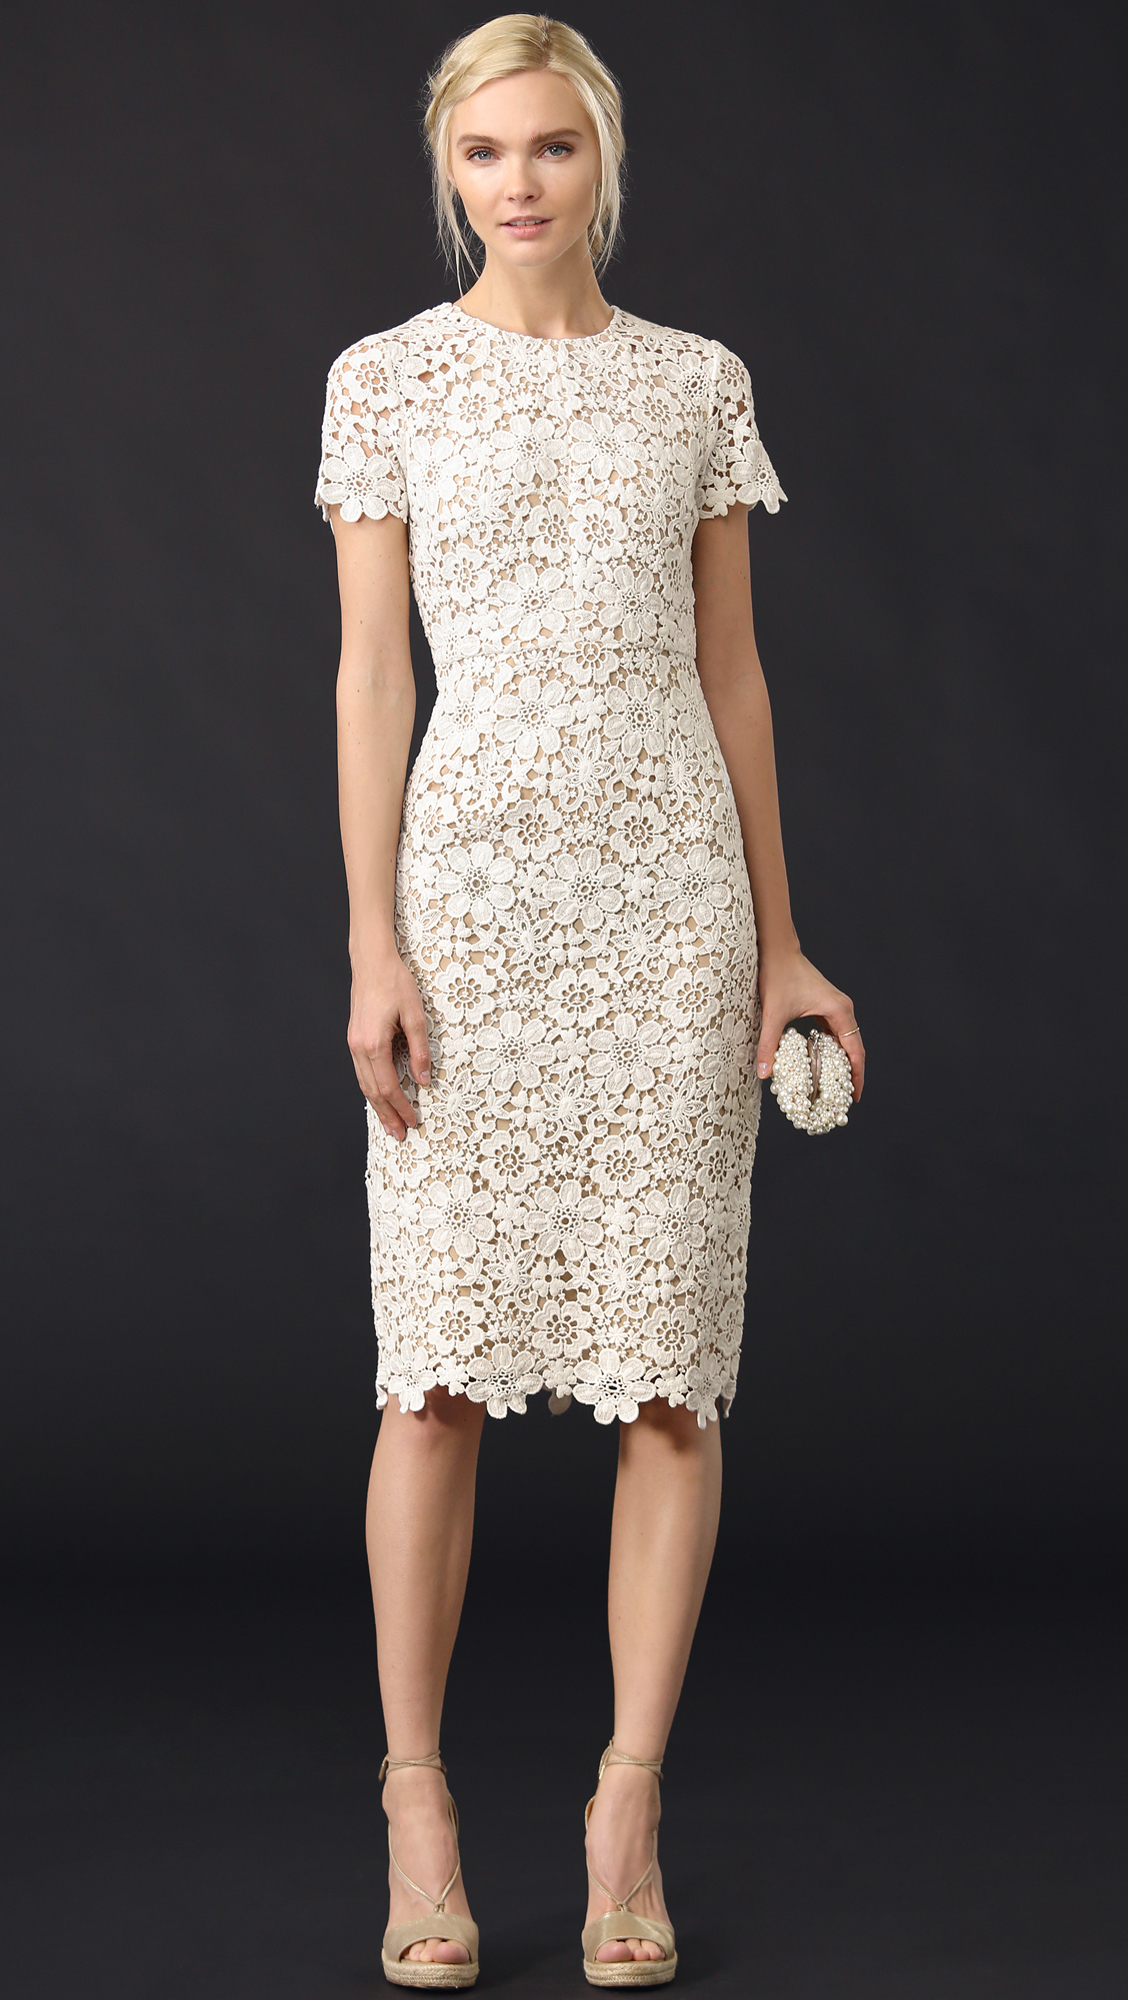 shoshanna white floral lace dress